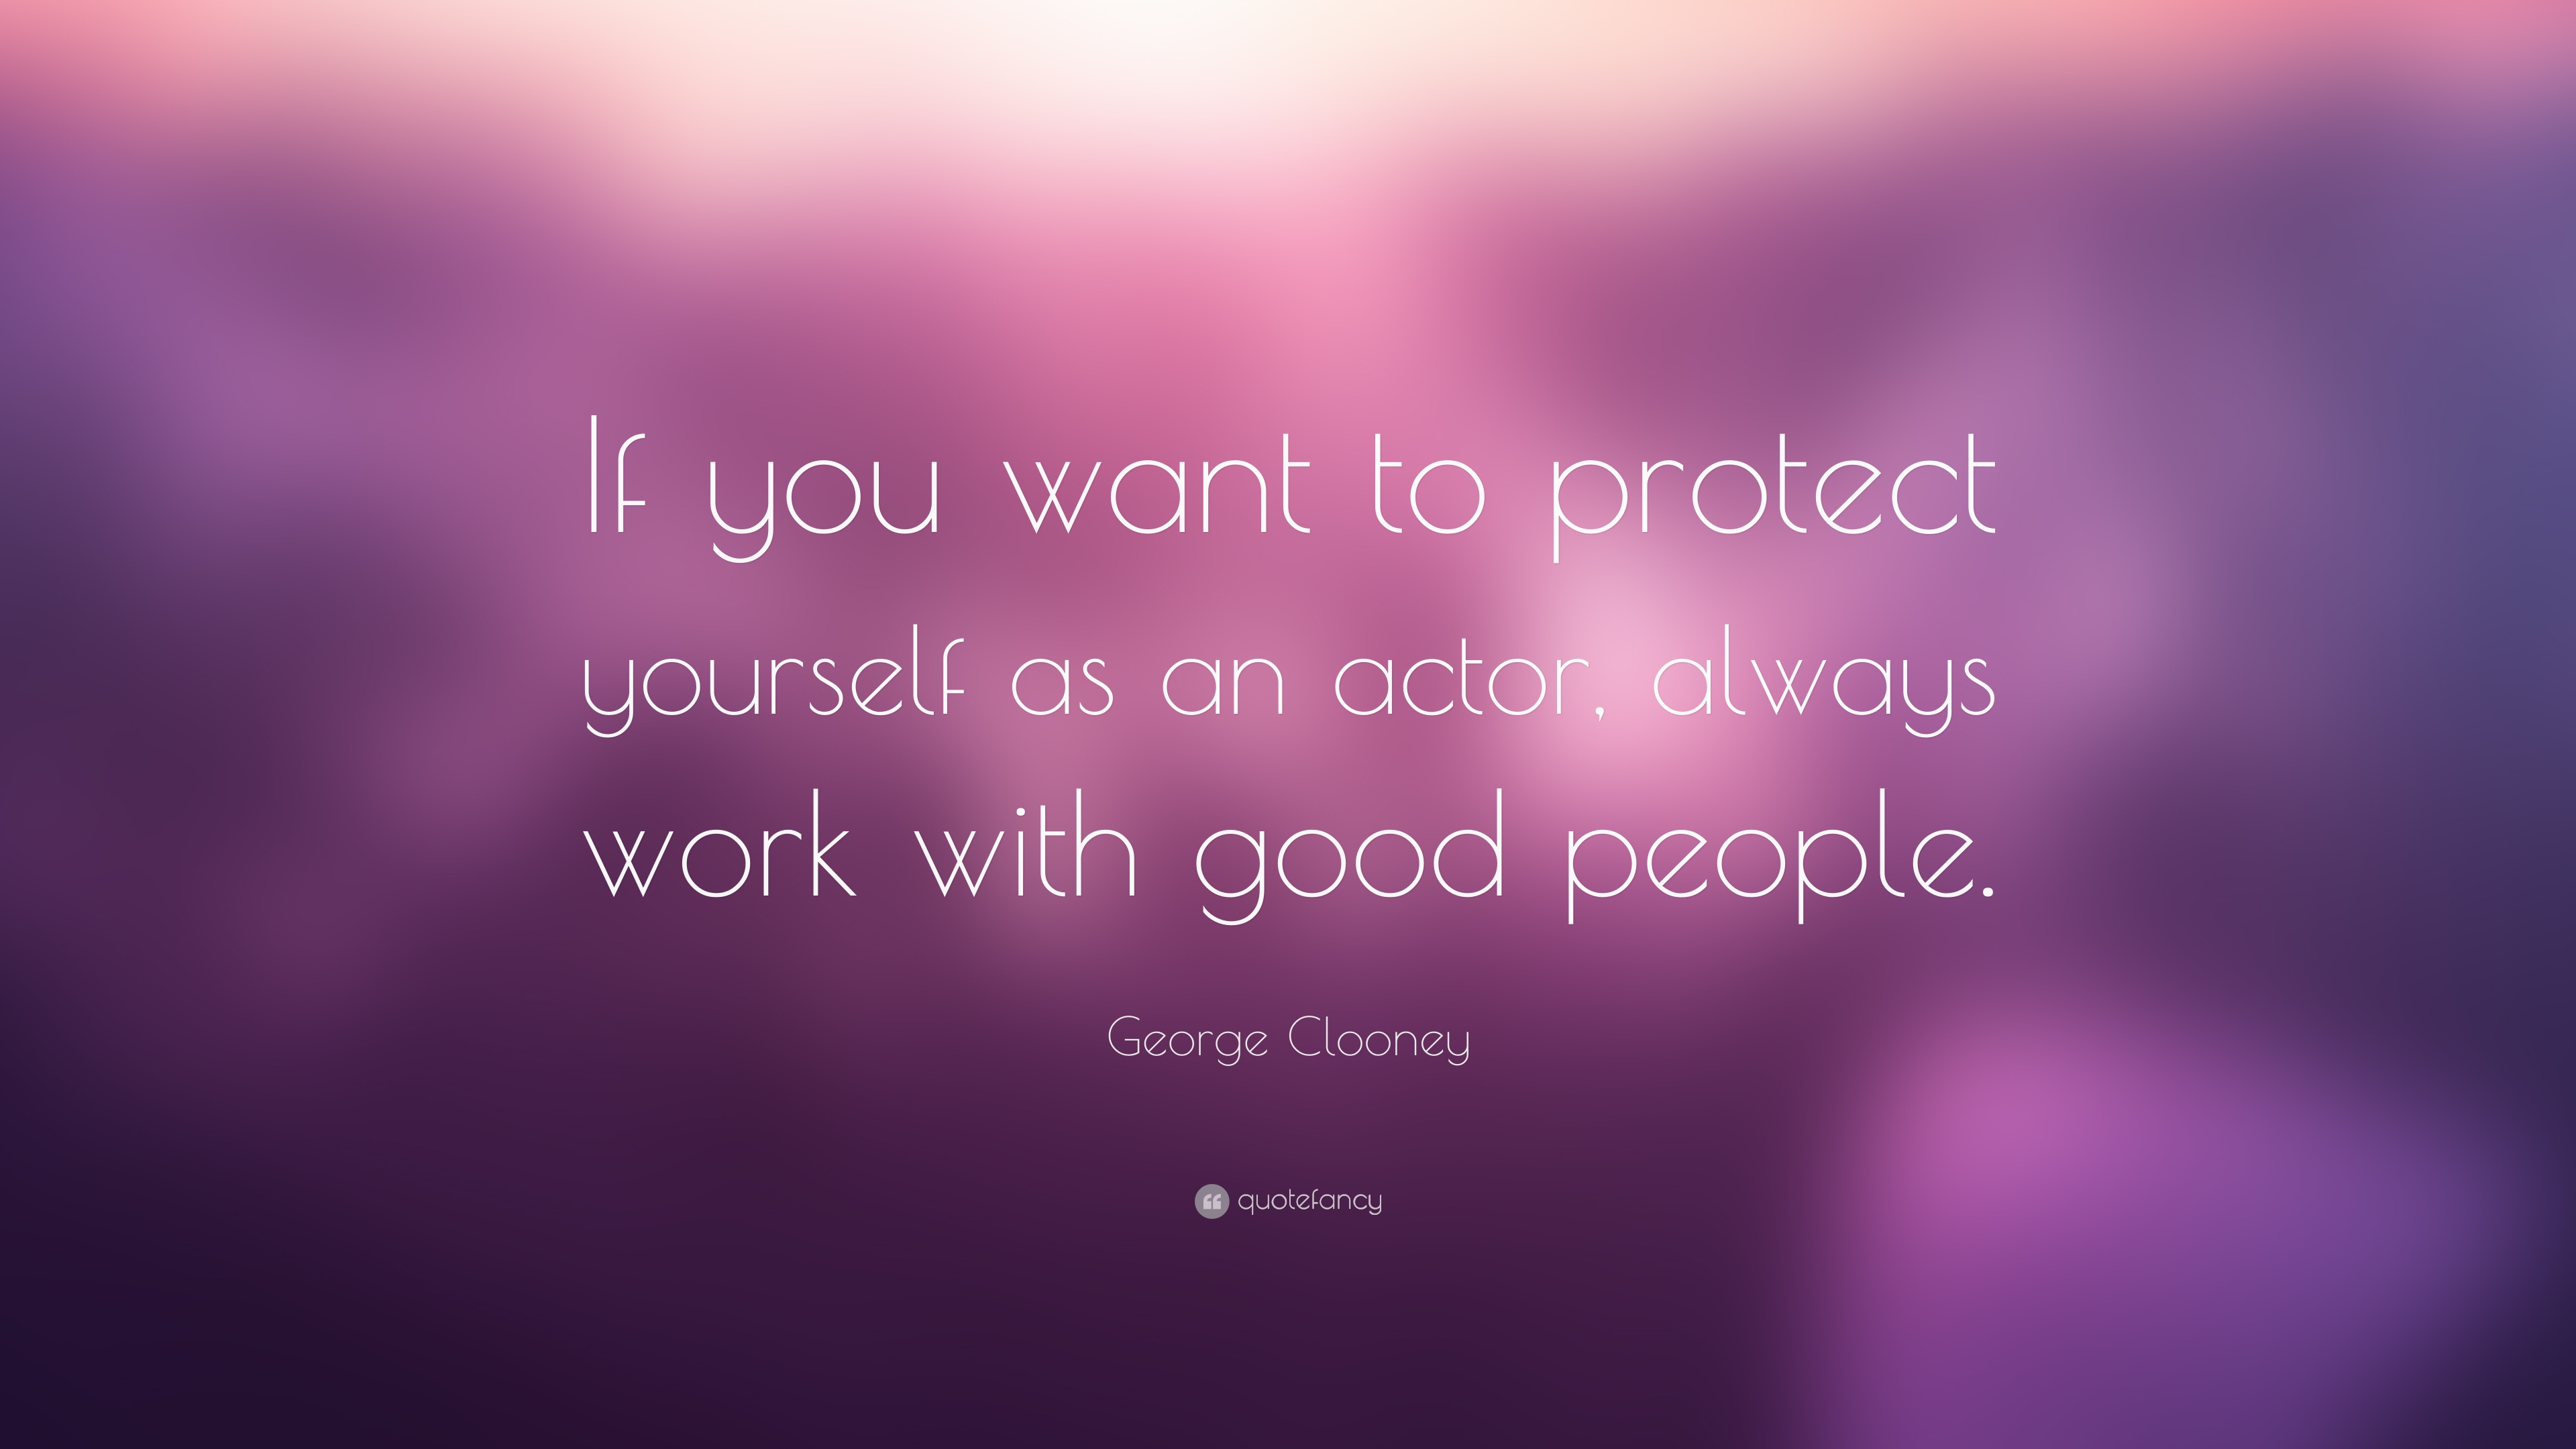 George Clooney Quote If You Want To Protect Yourself As An Actor